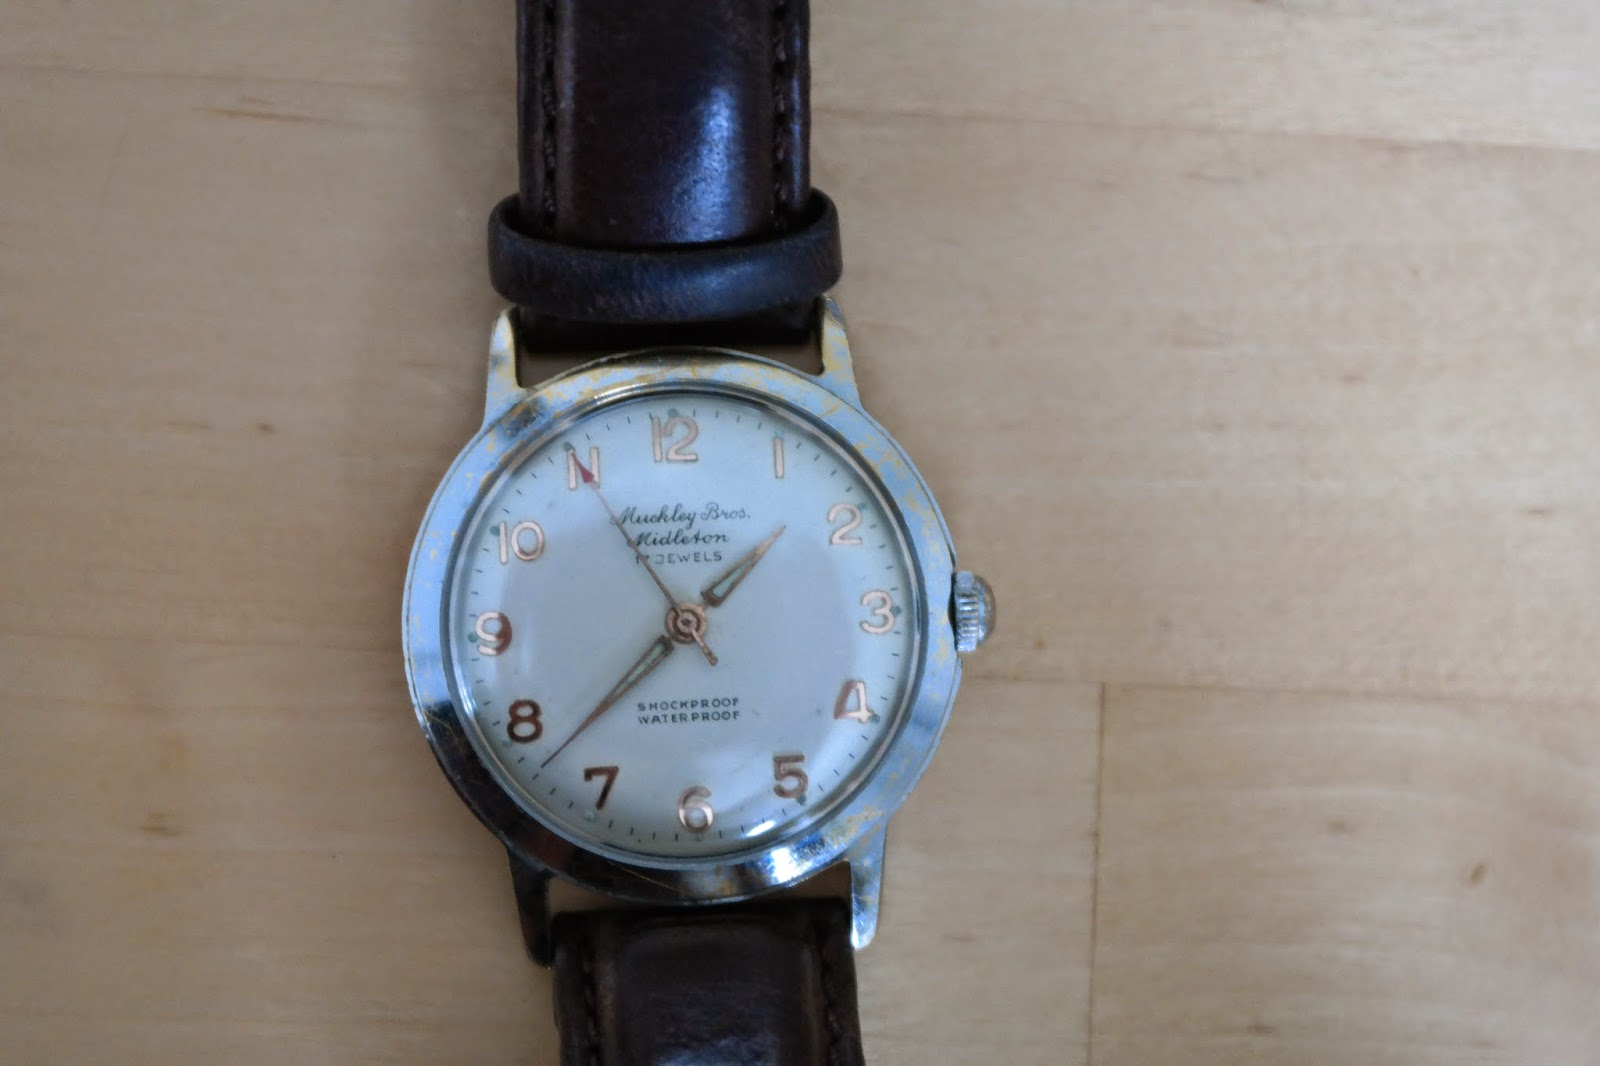 My Grandfathers Old Watch